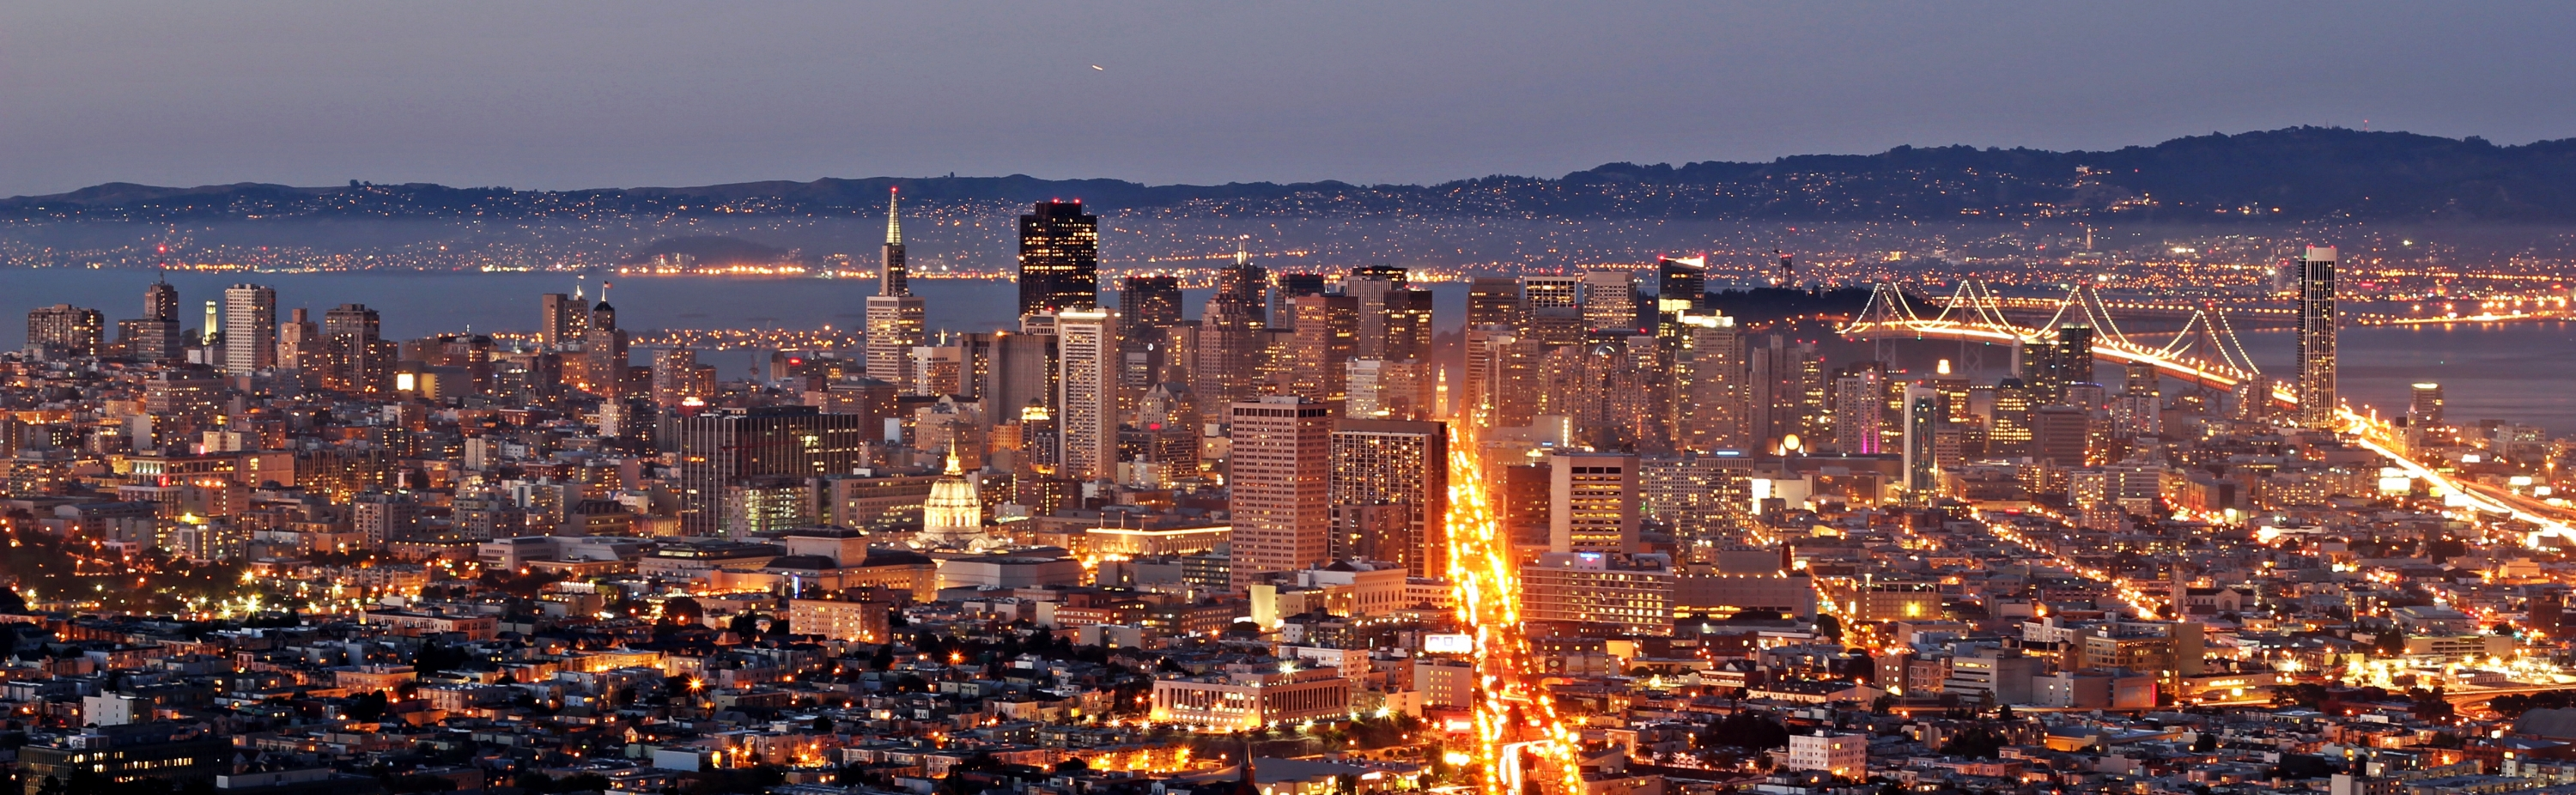 San Francisco downtown skyline at dusk